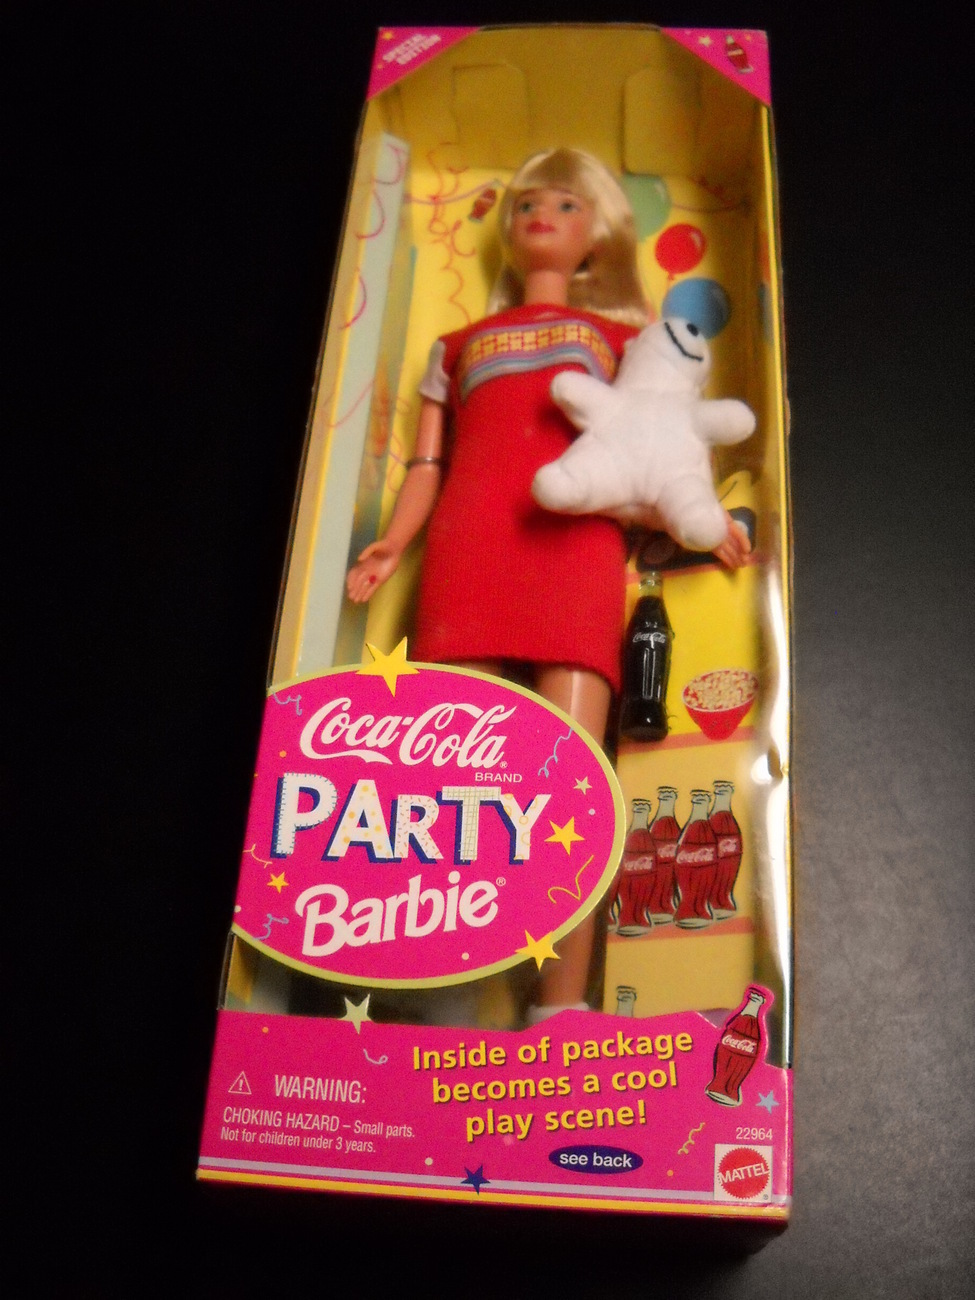 Barbie Coca Cola Party Barbie 1998 Mattel Cool Play Scene and Bear in Sealed Box Mattel, Mattel Barbie